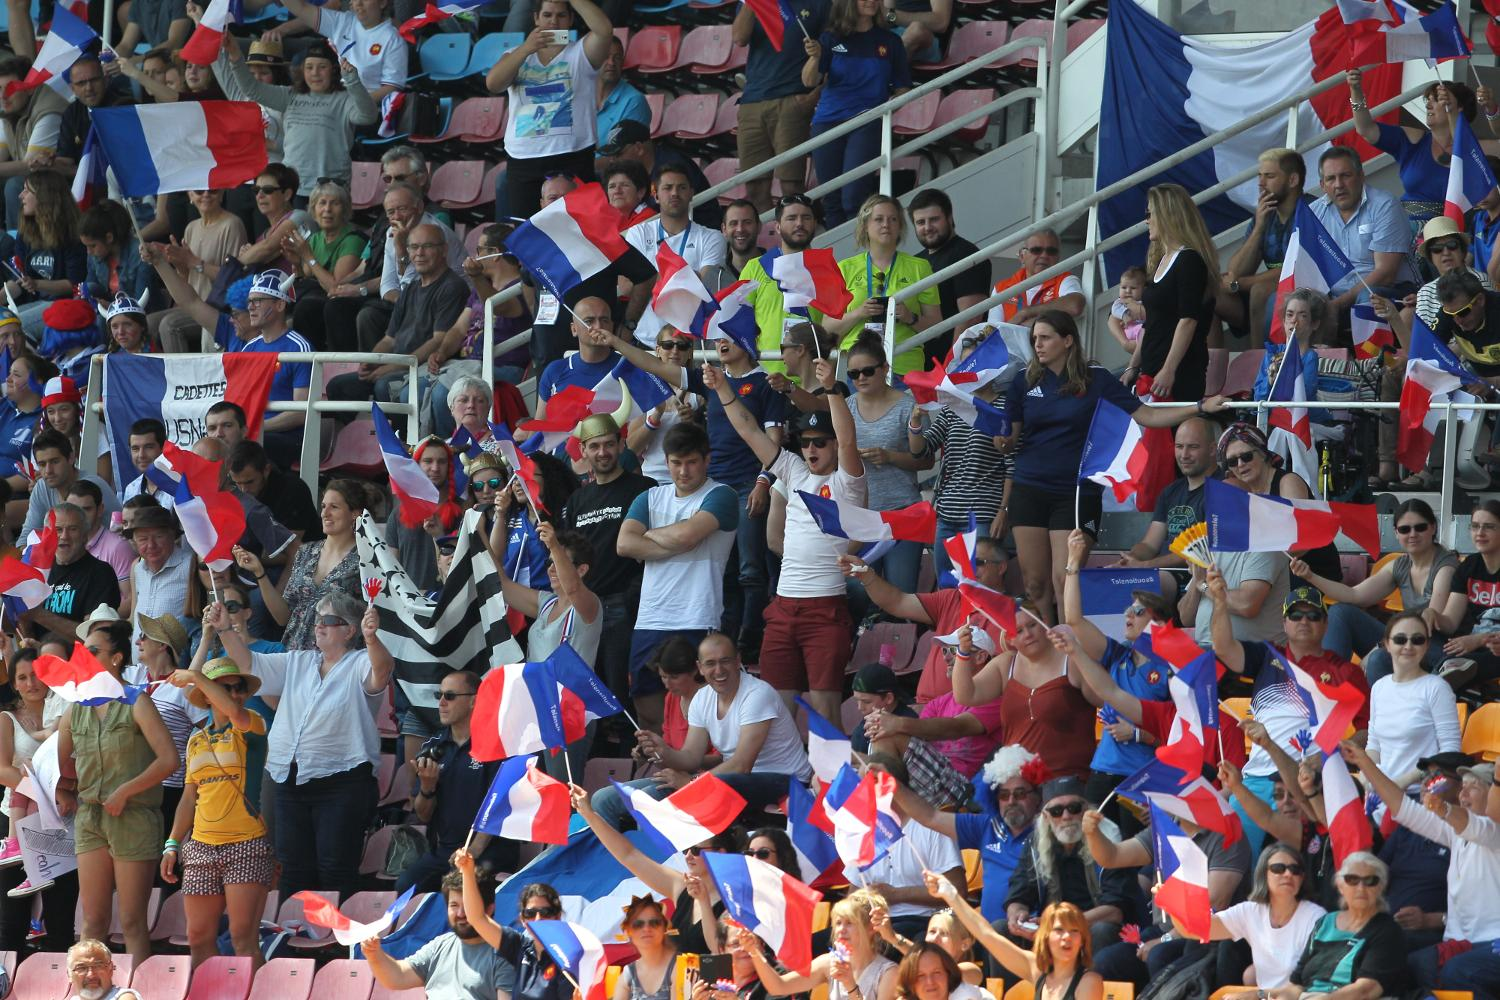 Fans at the #Clermont7s